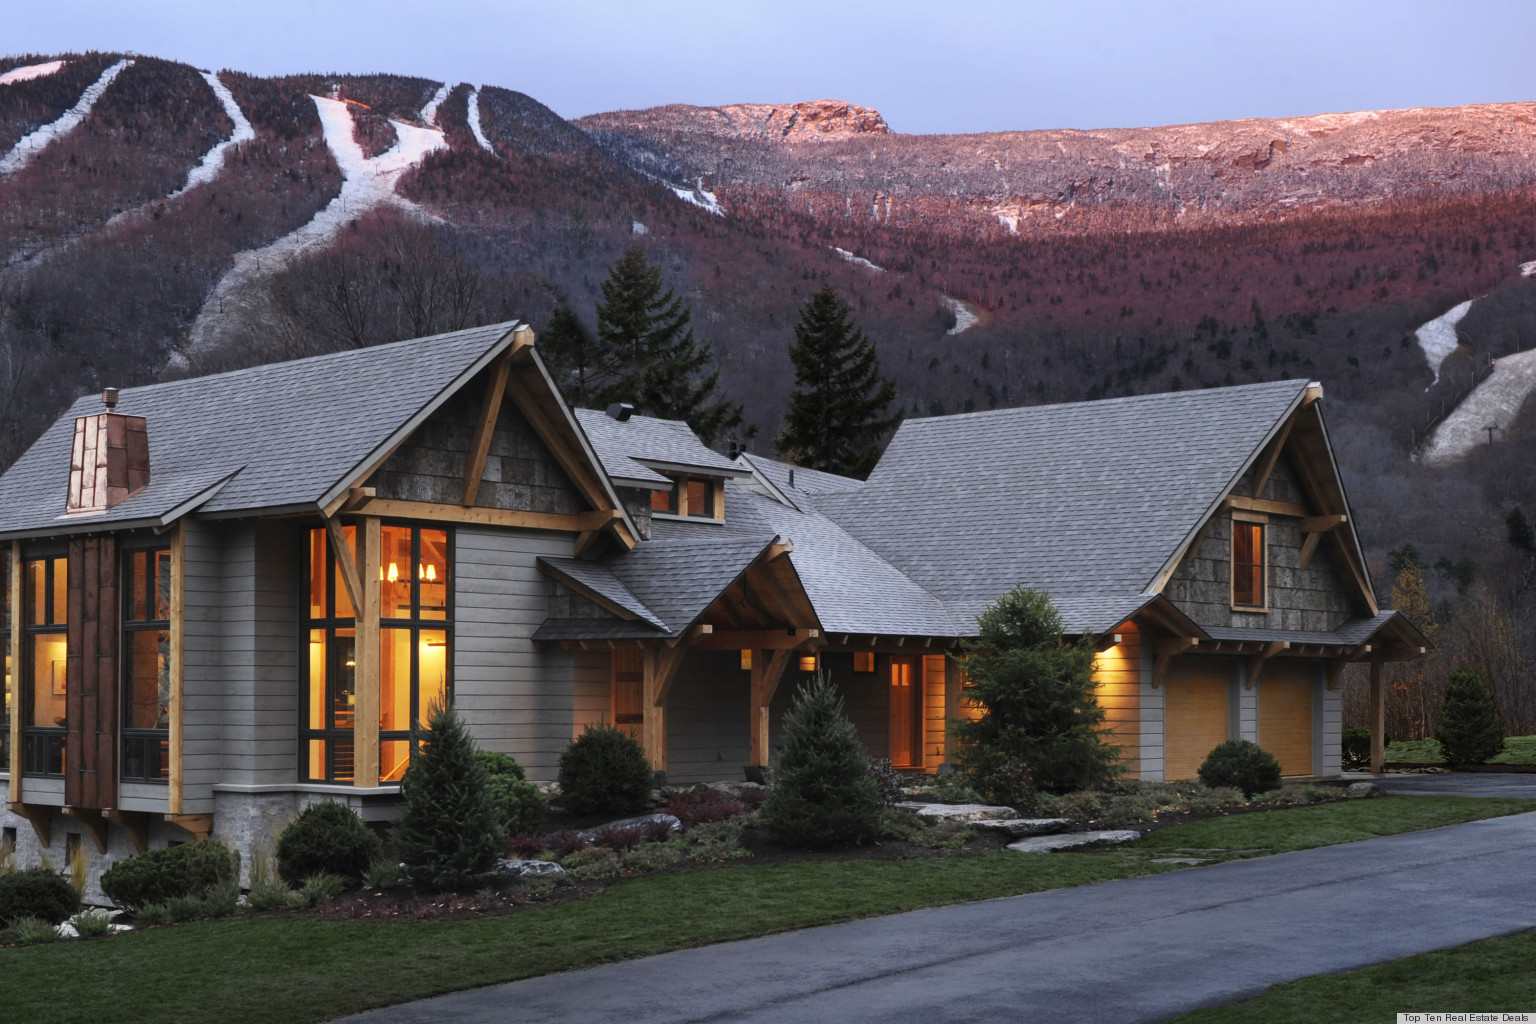 Hgtv dream home 2011 in stowe vermont on sale for for All hgtv dream homes